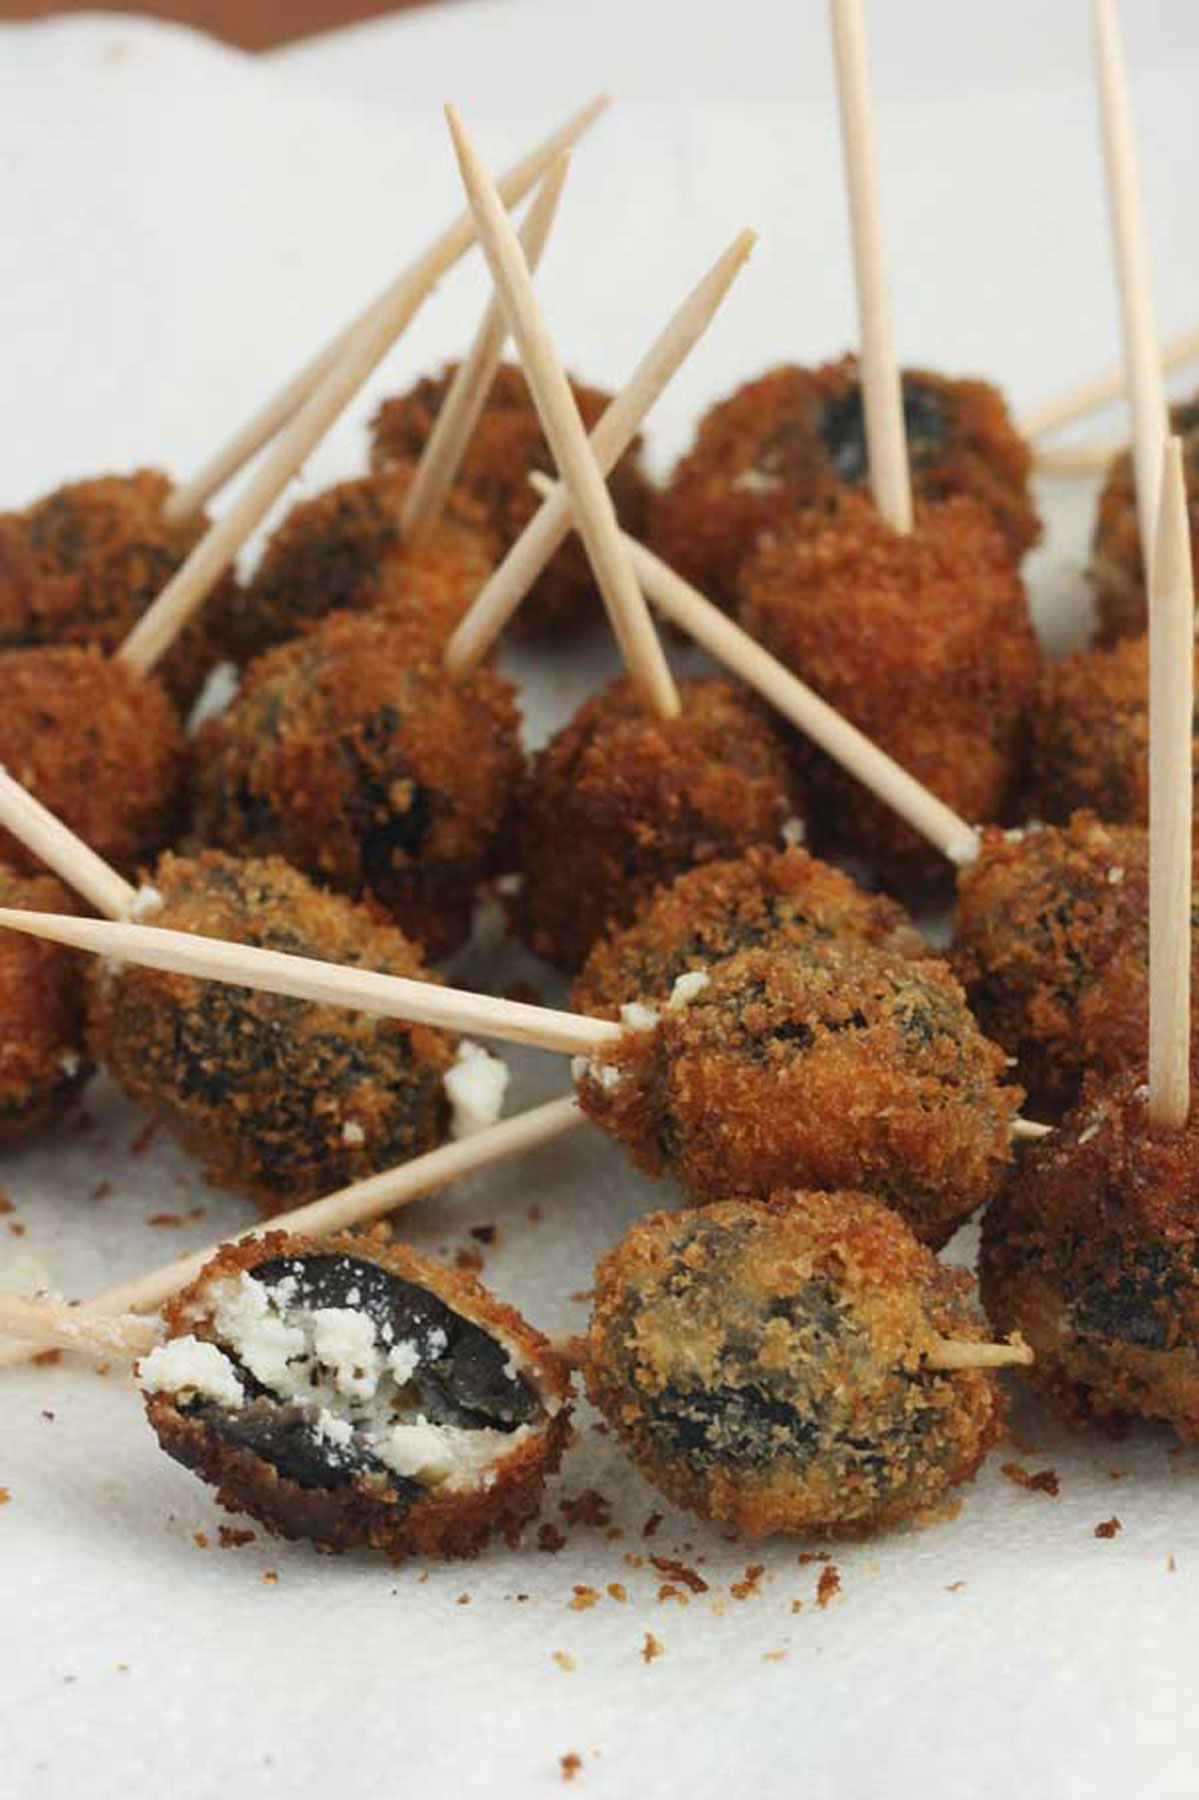 Greek fried olives stuffed with feta cheese with cocktail sticks in them on baking paper